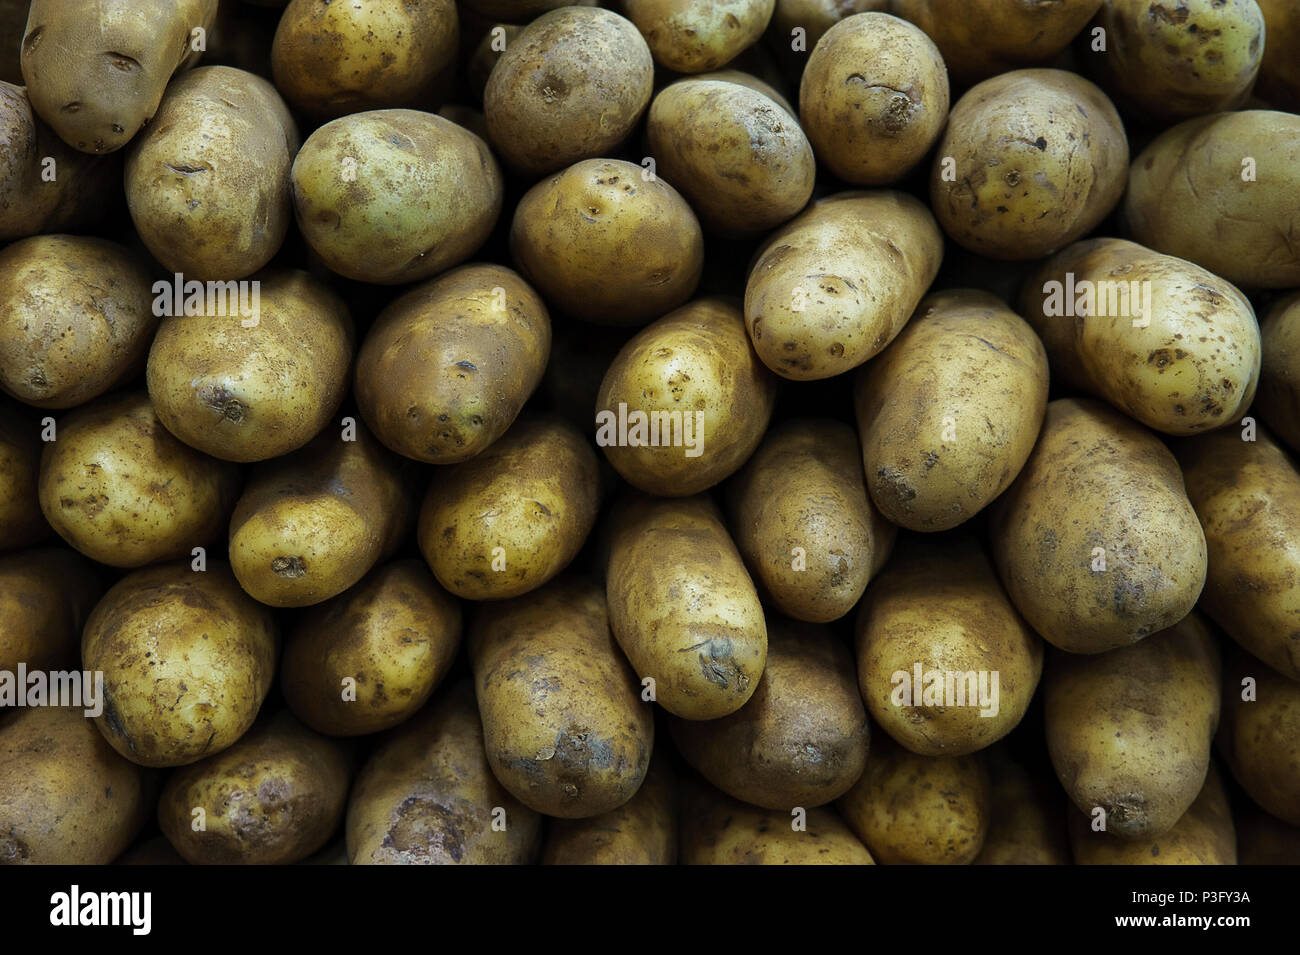 Food background - Russet potatoes pile at the farmers market - Stock Image